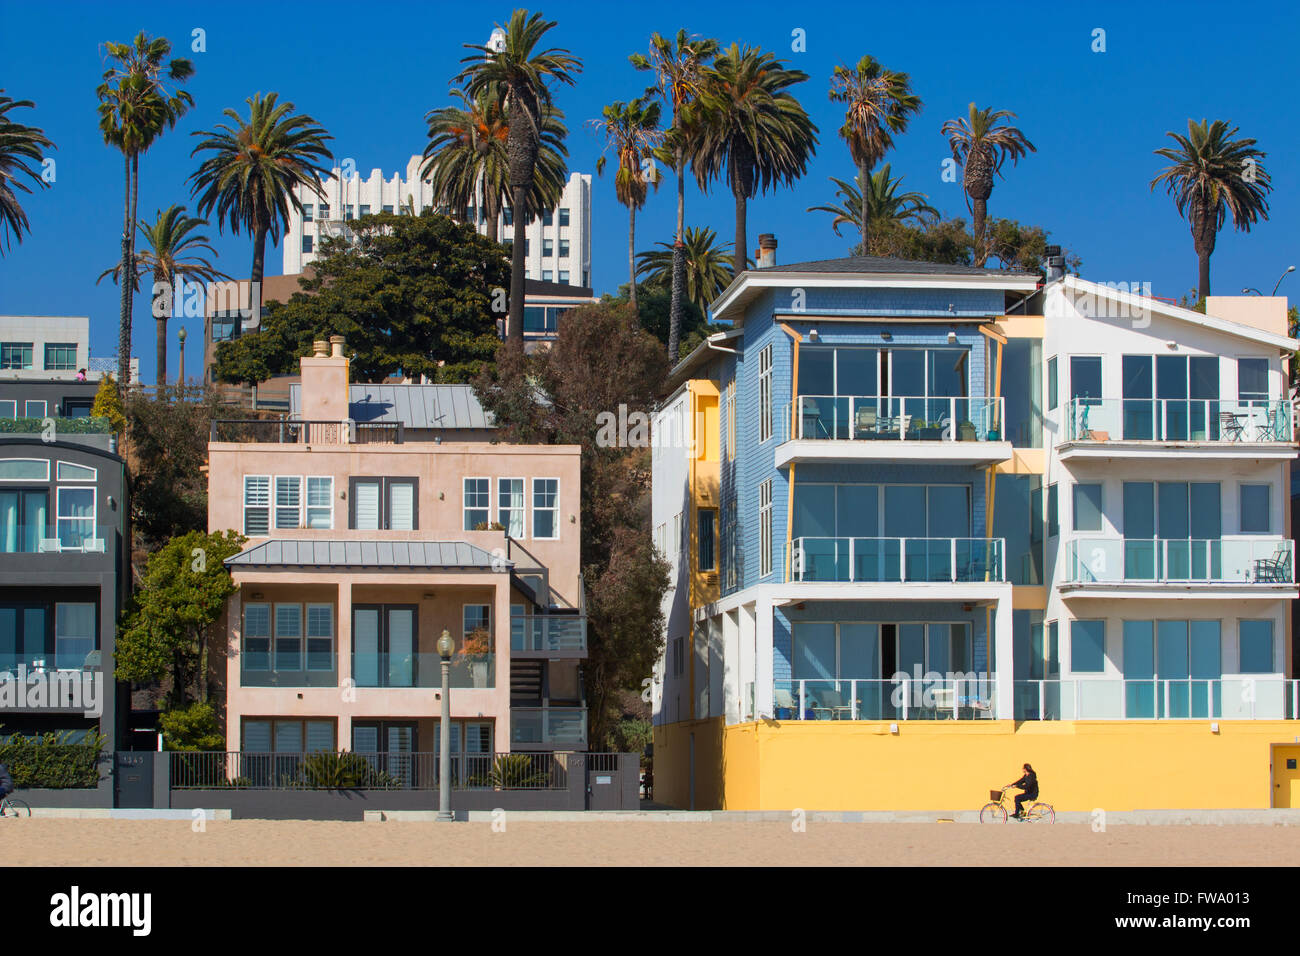 Houses on Santa Monica beach in Los Angeles - Stock Image